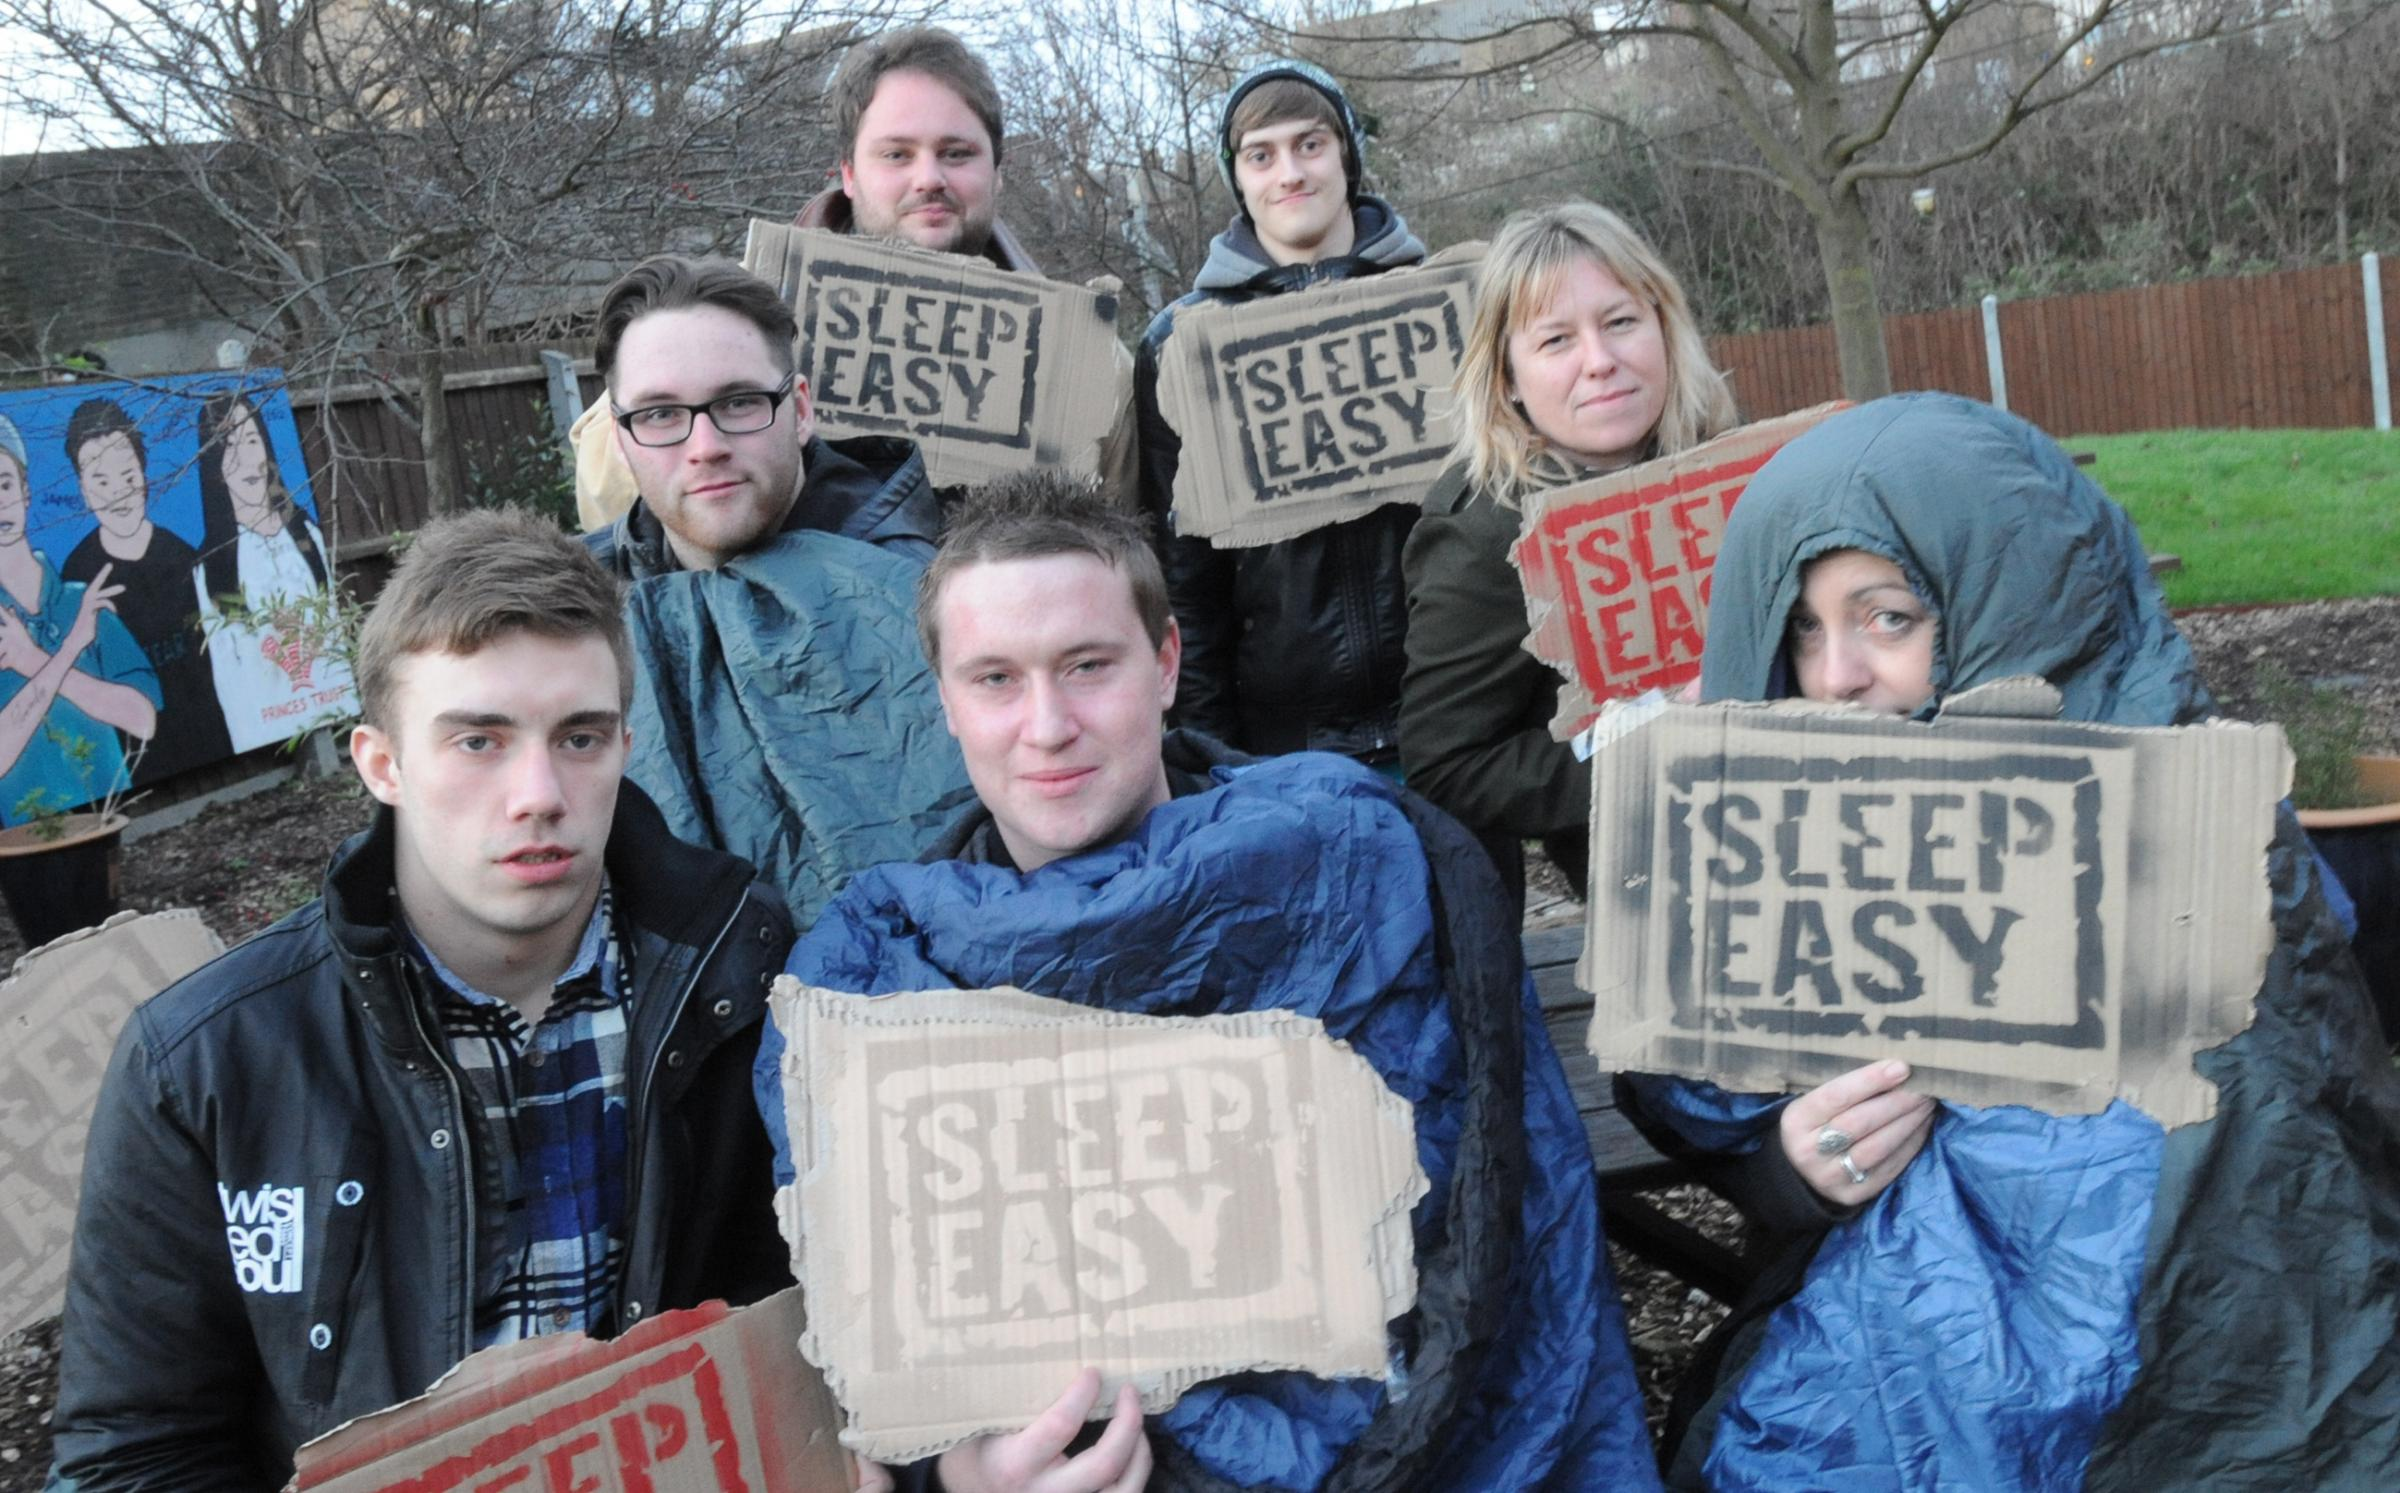 Heading out – volunteers for the Sleep Easy event